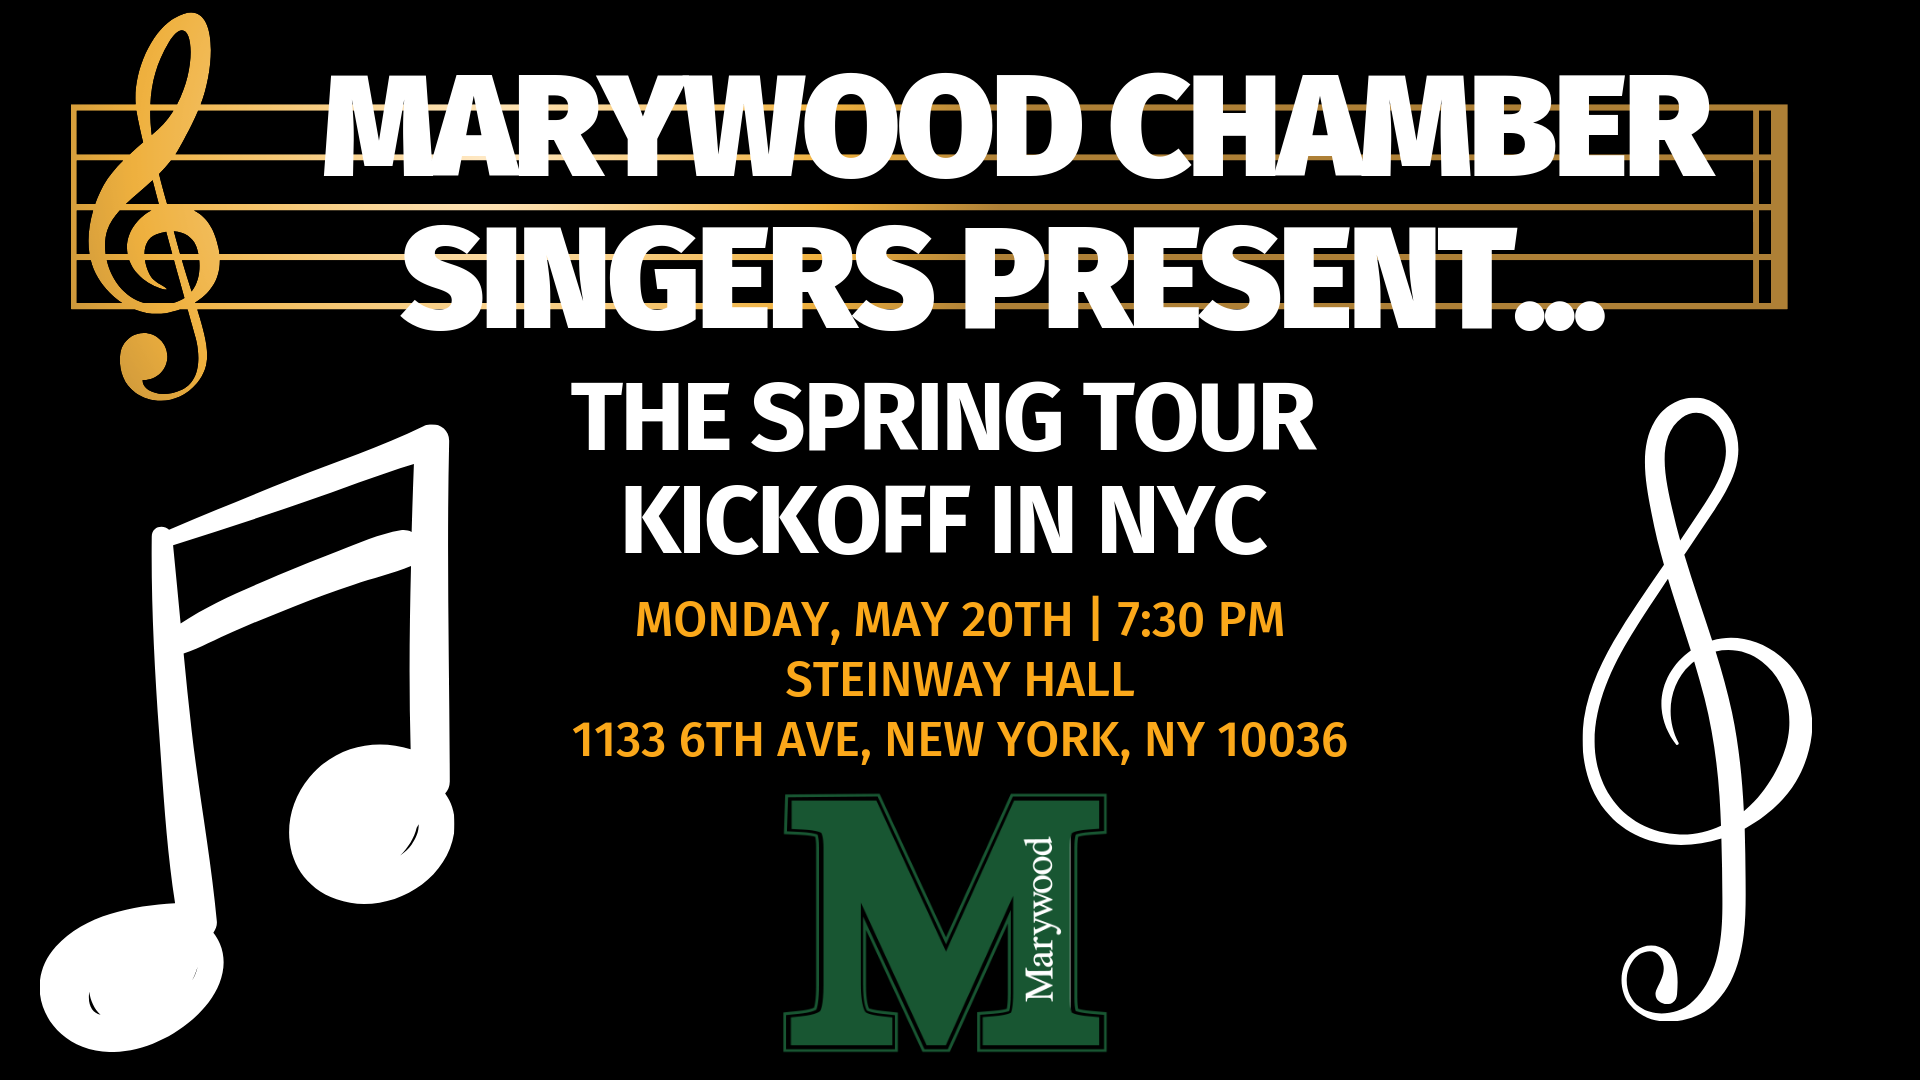 Marywood University Chamber Singers Spring Tour Kickoff - Steinway Hall, New York, NY at 7:30 p.m.